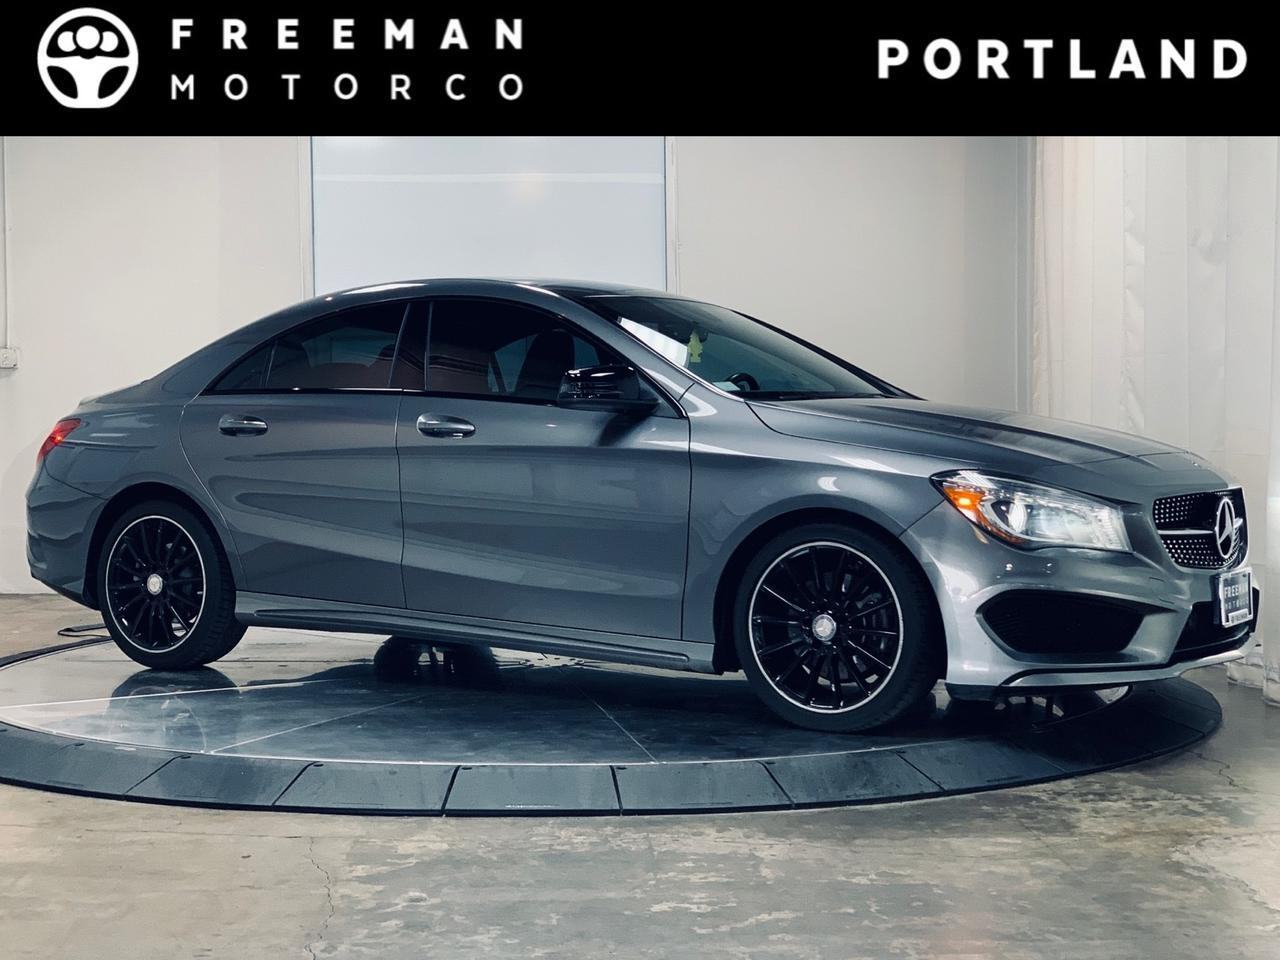 2014 Mercedes-Benz CLA 250 Bluetooth 4Matic Neon Stitching Portland OR